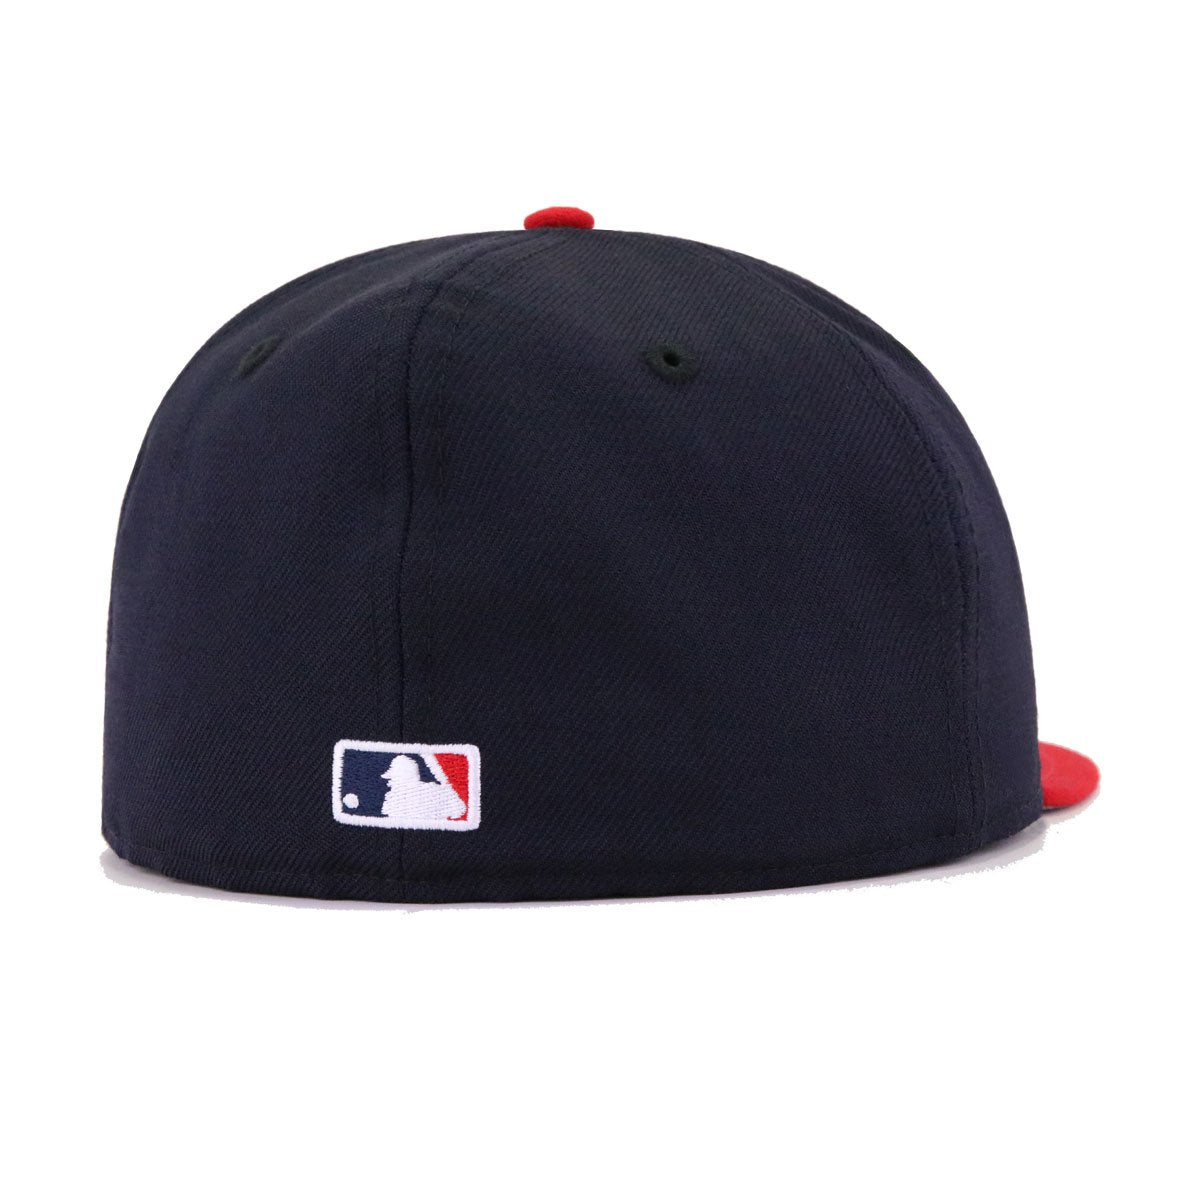 Atlanta Braves Navy Scarlet 2000 All Star Game New Era 59Fifty Fitted